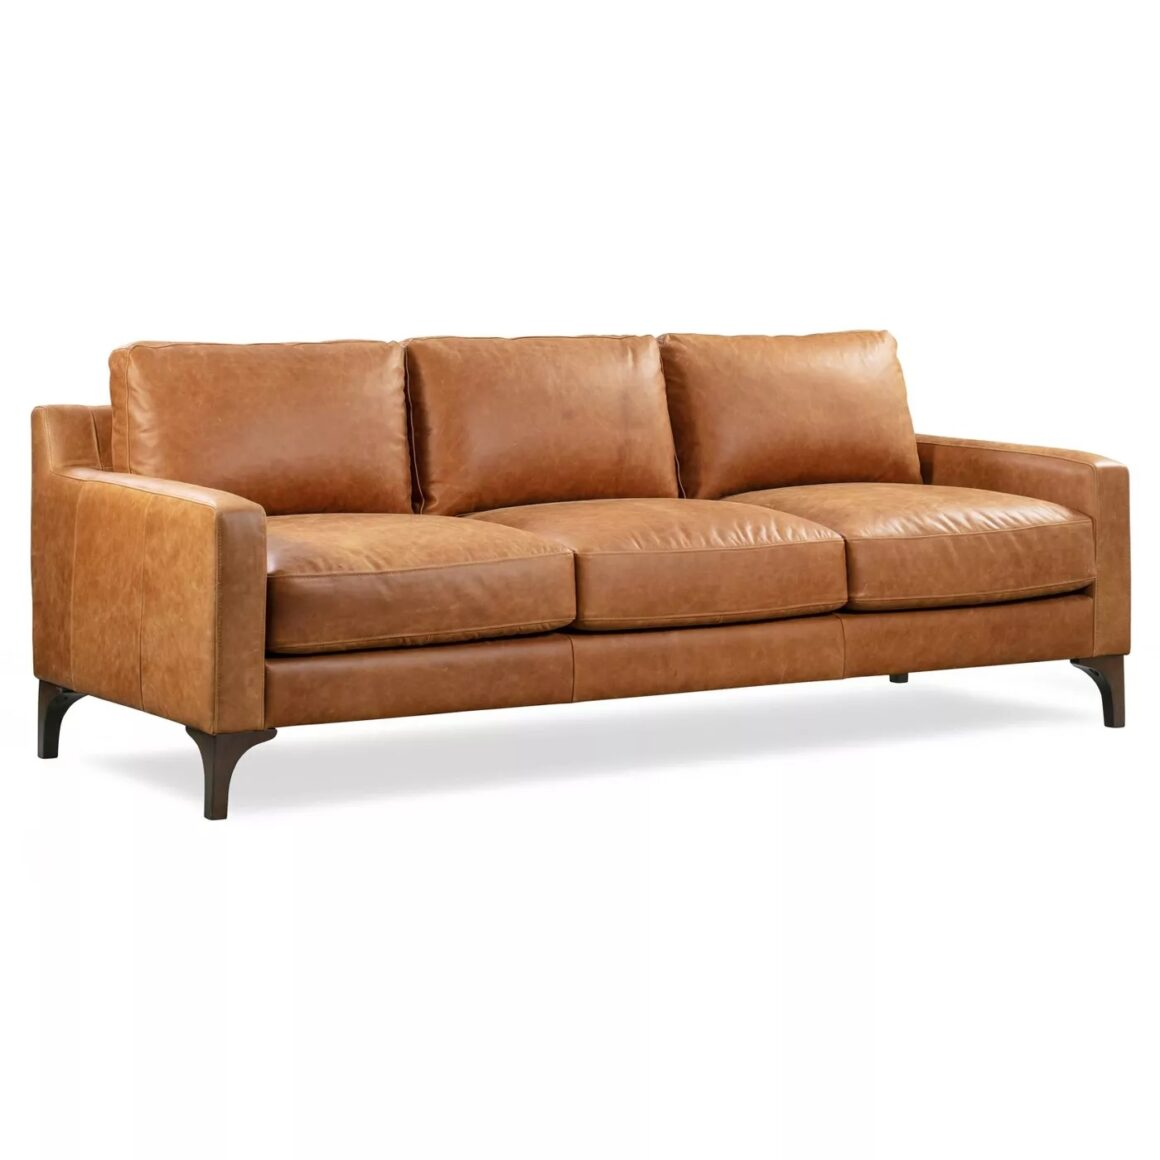 10 Affordable Leather Couches (2021) - Are you looking for a leather couch that won't break the bank?